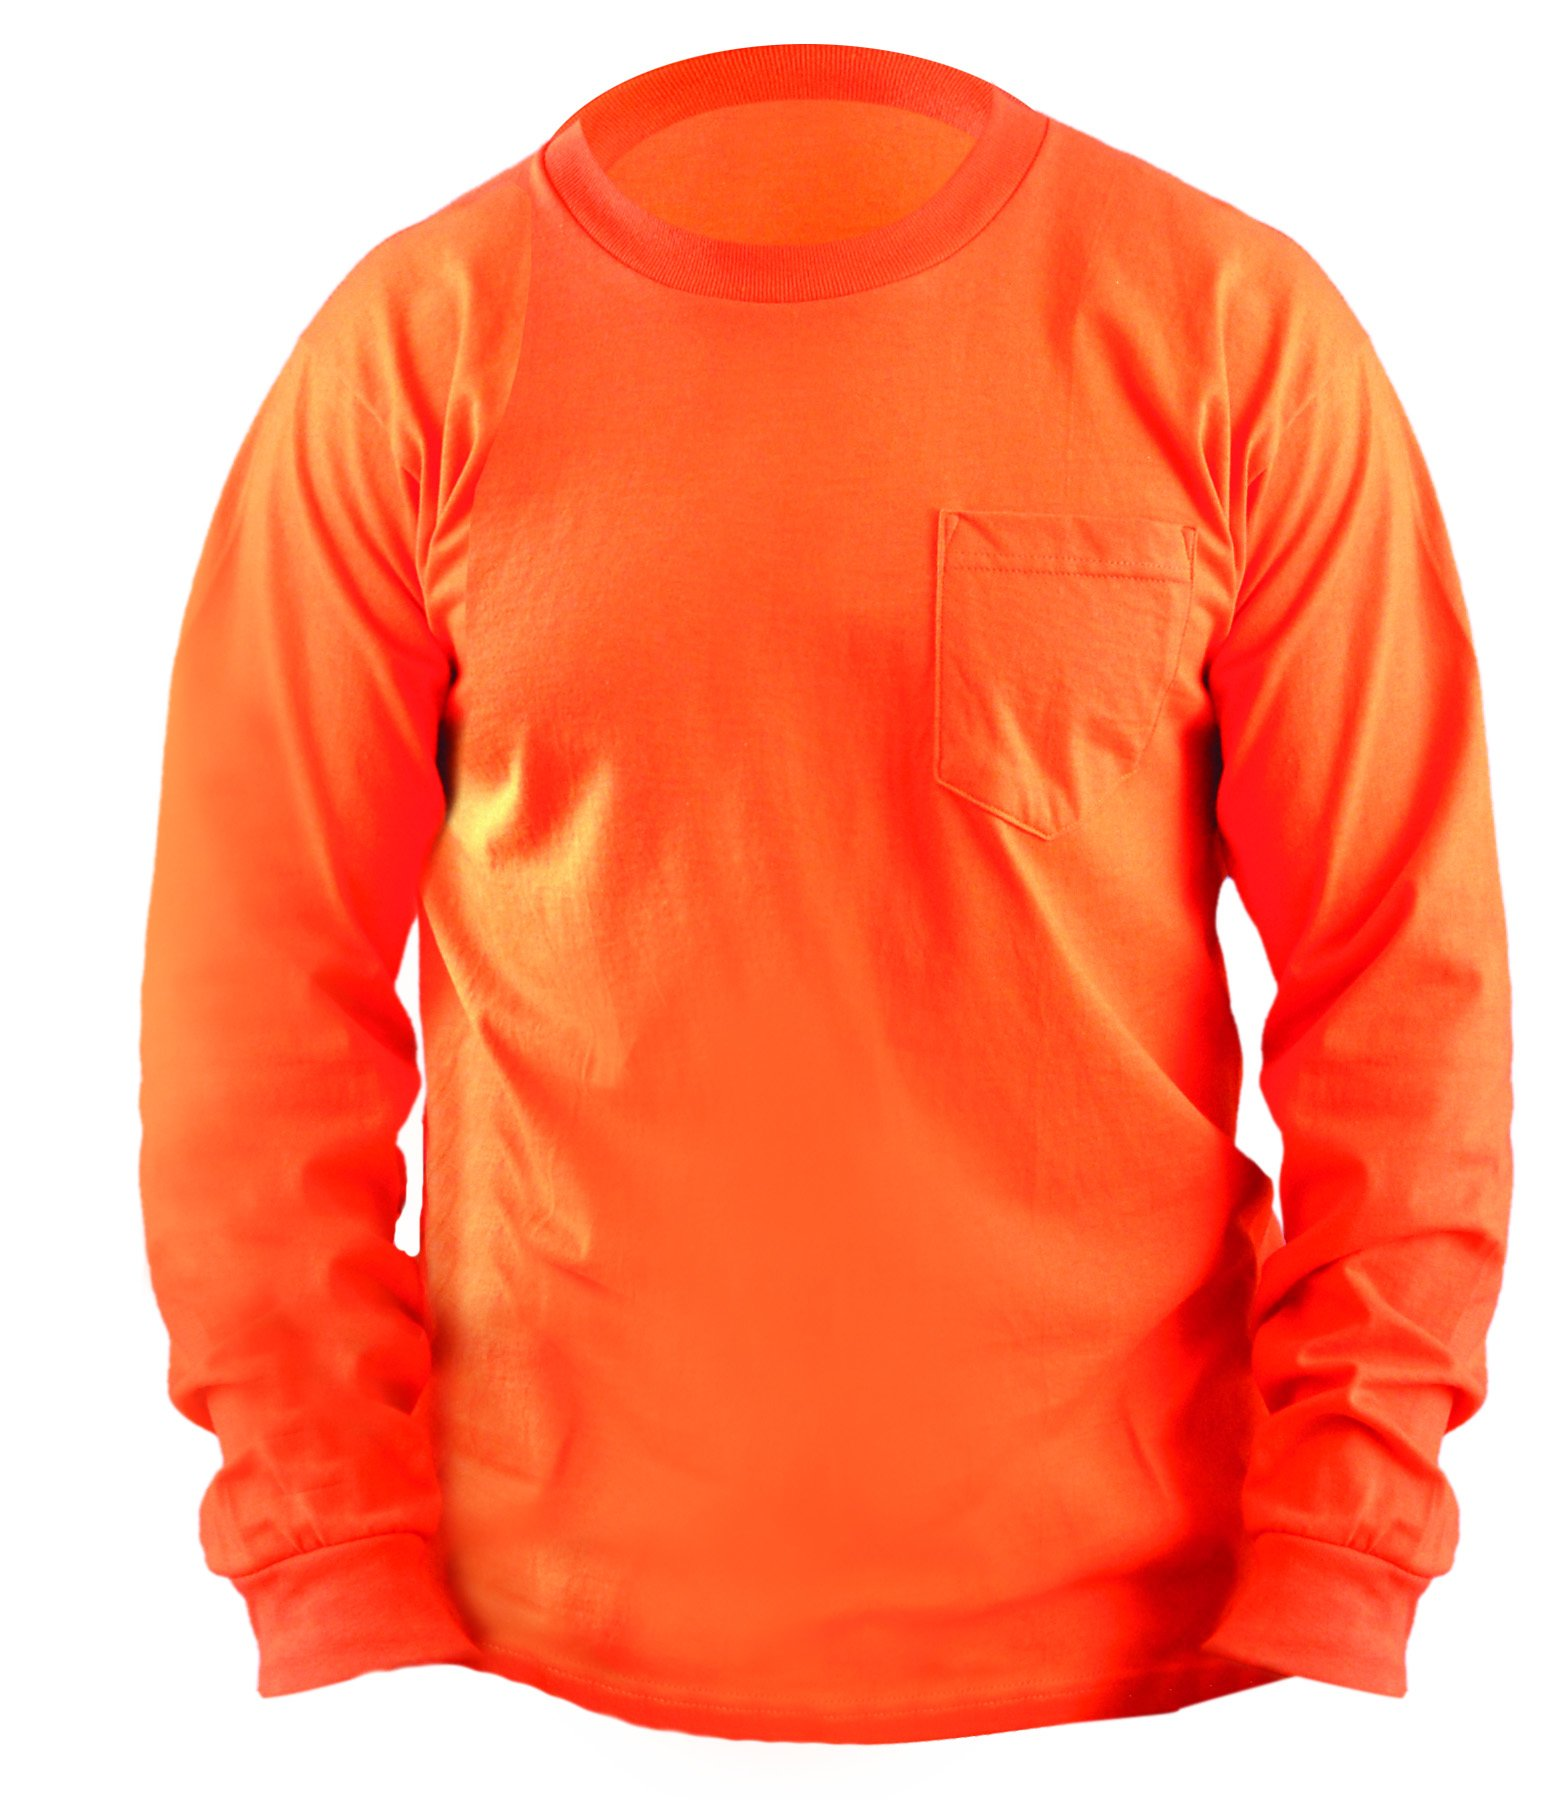 OccuNomix LUX-300LP-07L Classic Long Sleeve 100% Pre-Shrunk Cotton T-Shirt with Pocket, Non-ANSI, Large, Orange (High Visibility)